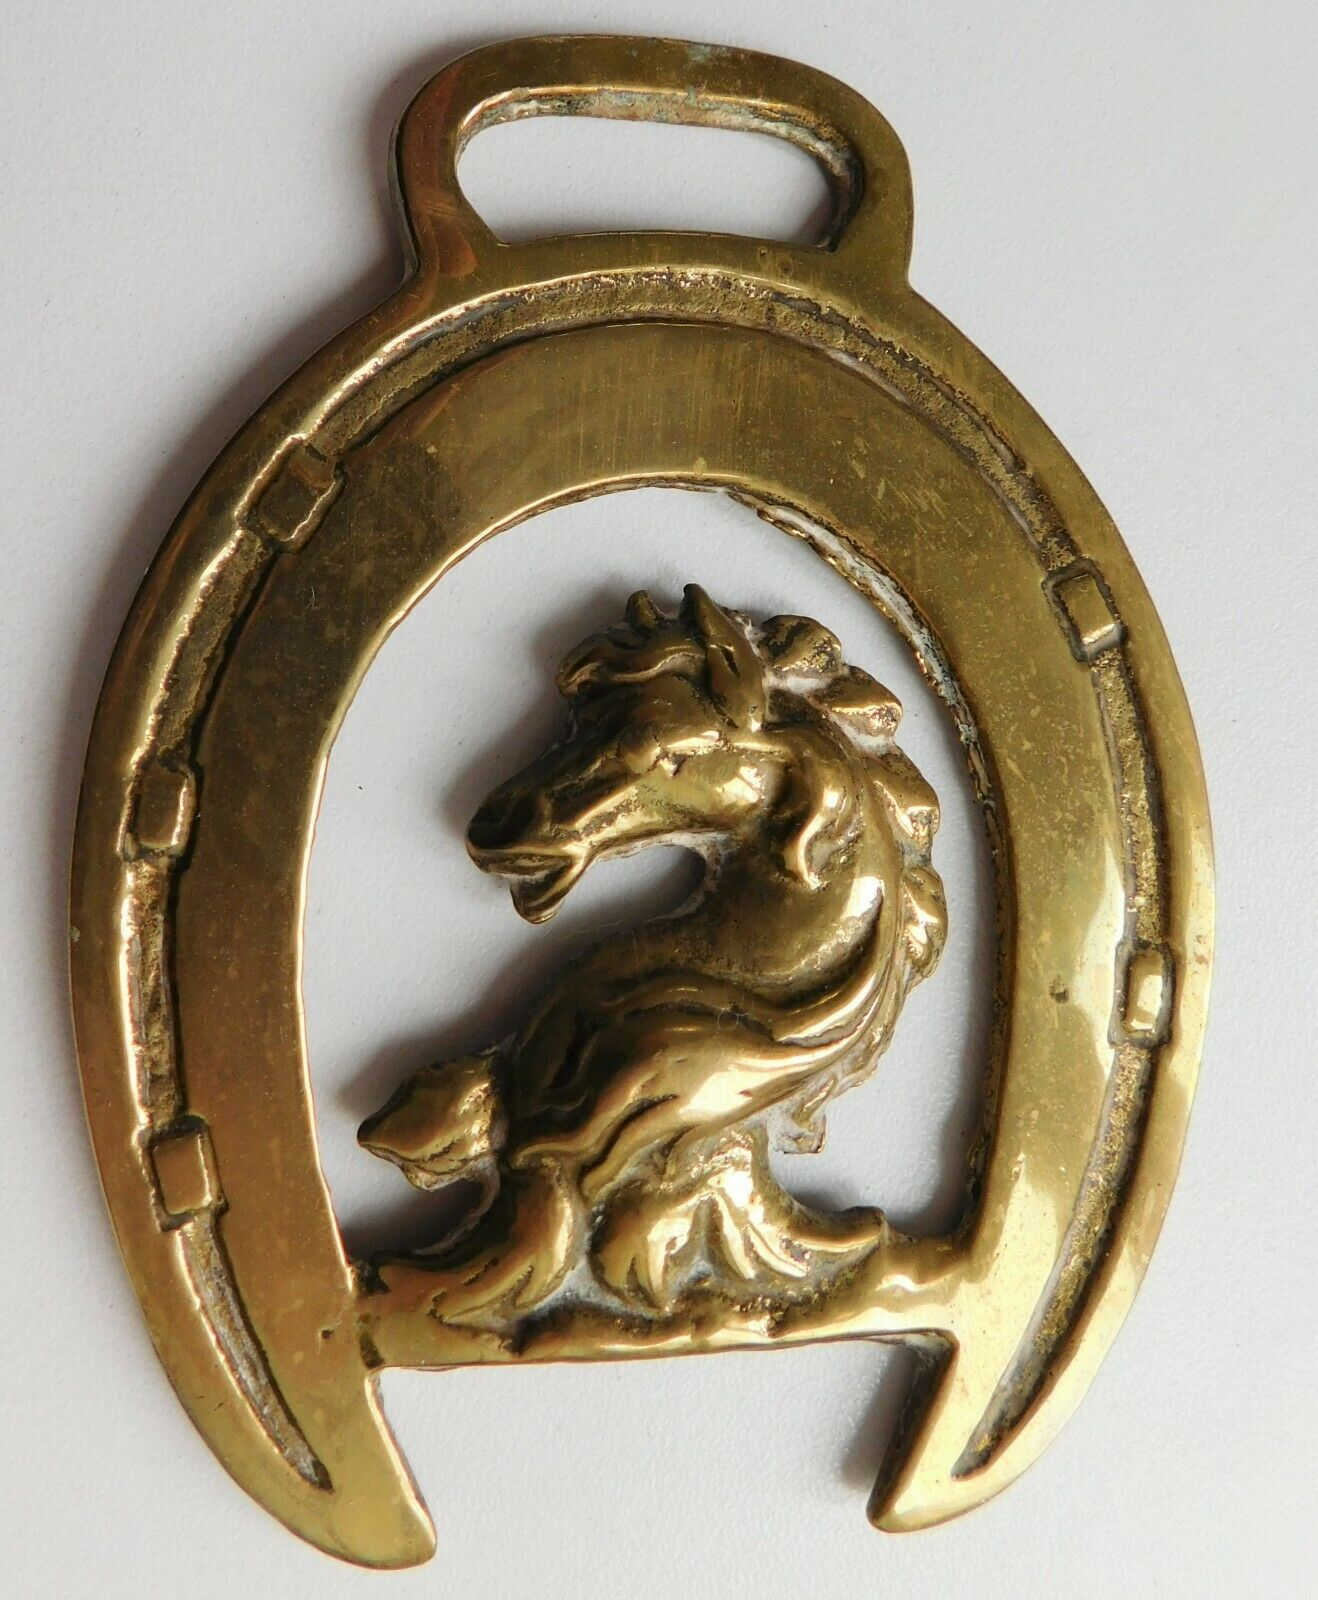 Vintage horse brass horse shoe and head traditional equestrian ornament trapping